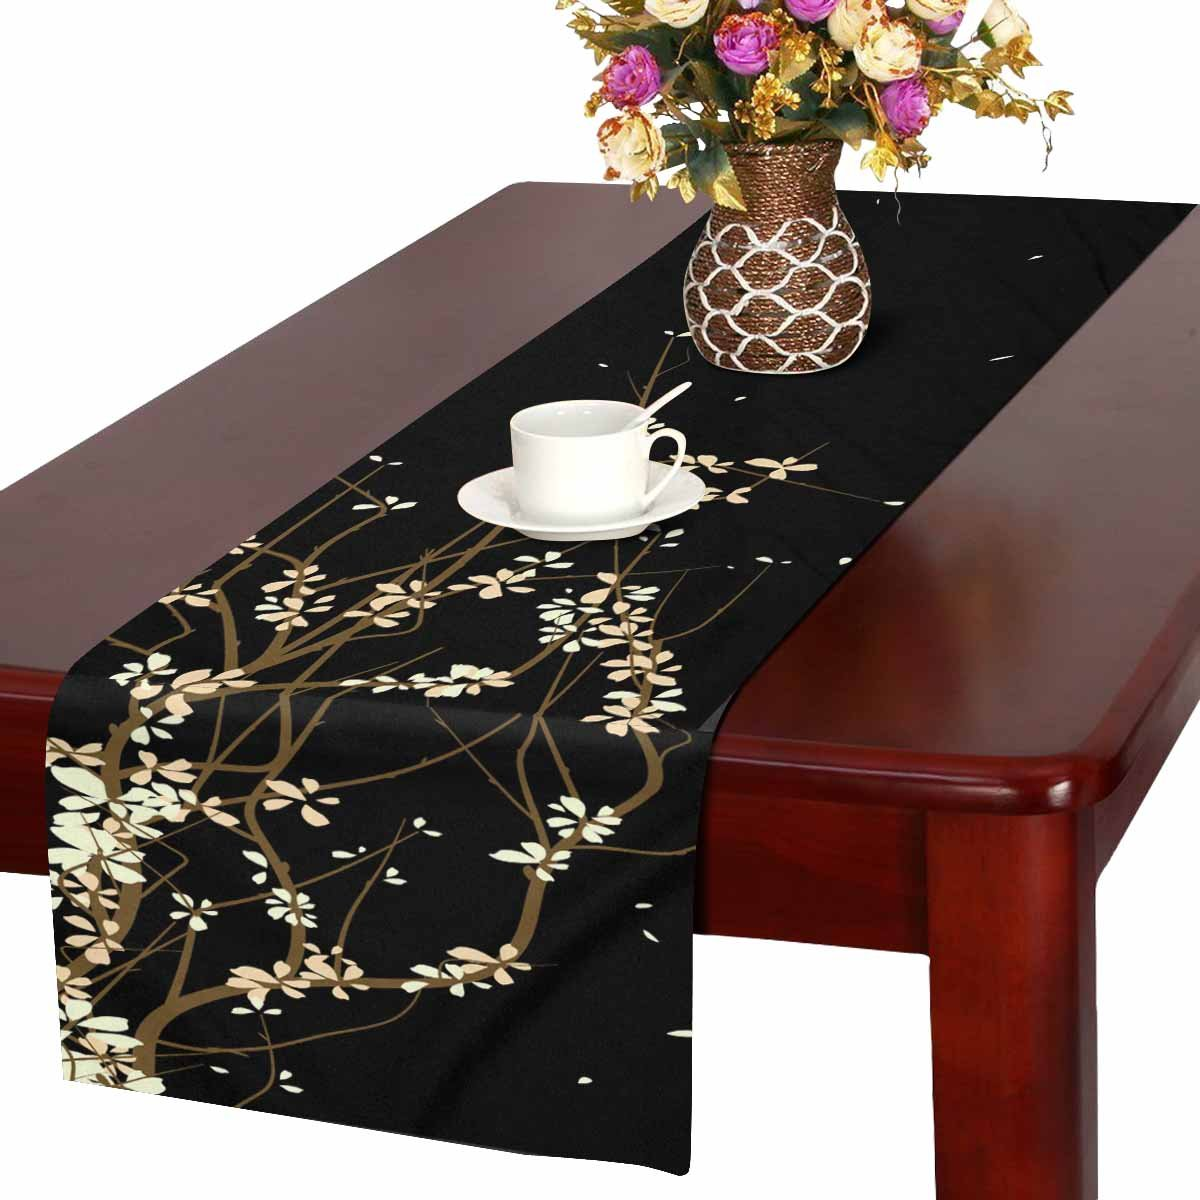 Mkhert Abstract Drawing Table Runner For Wedding Party